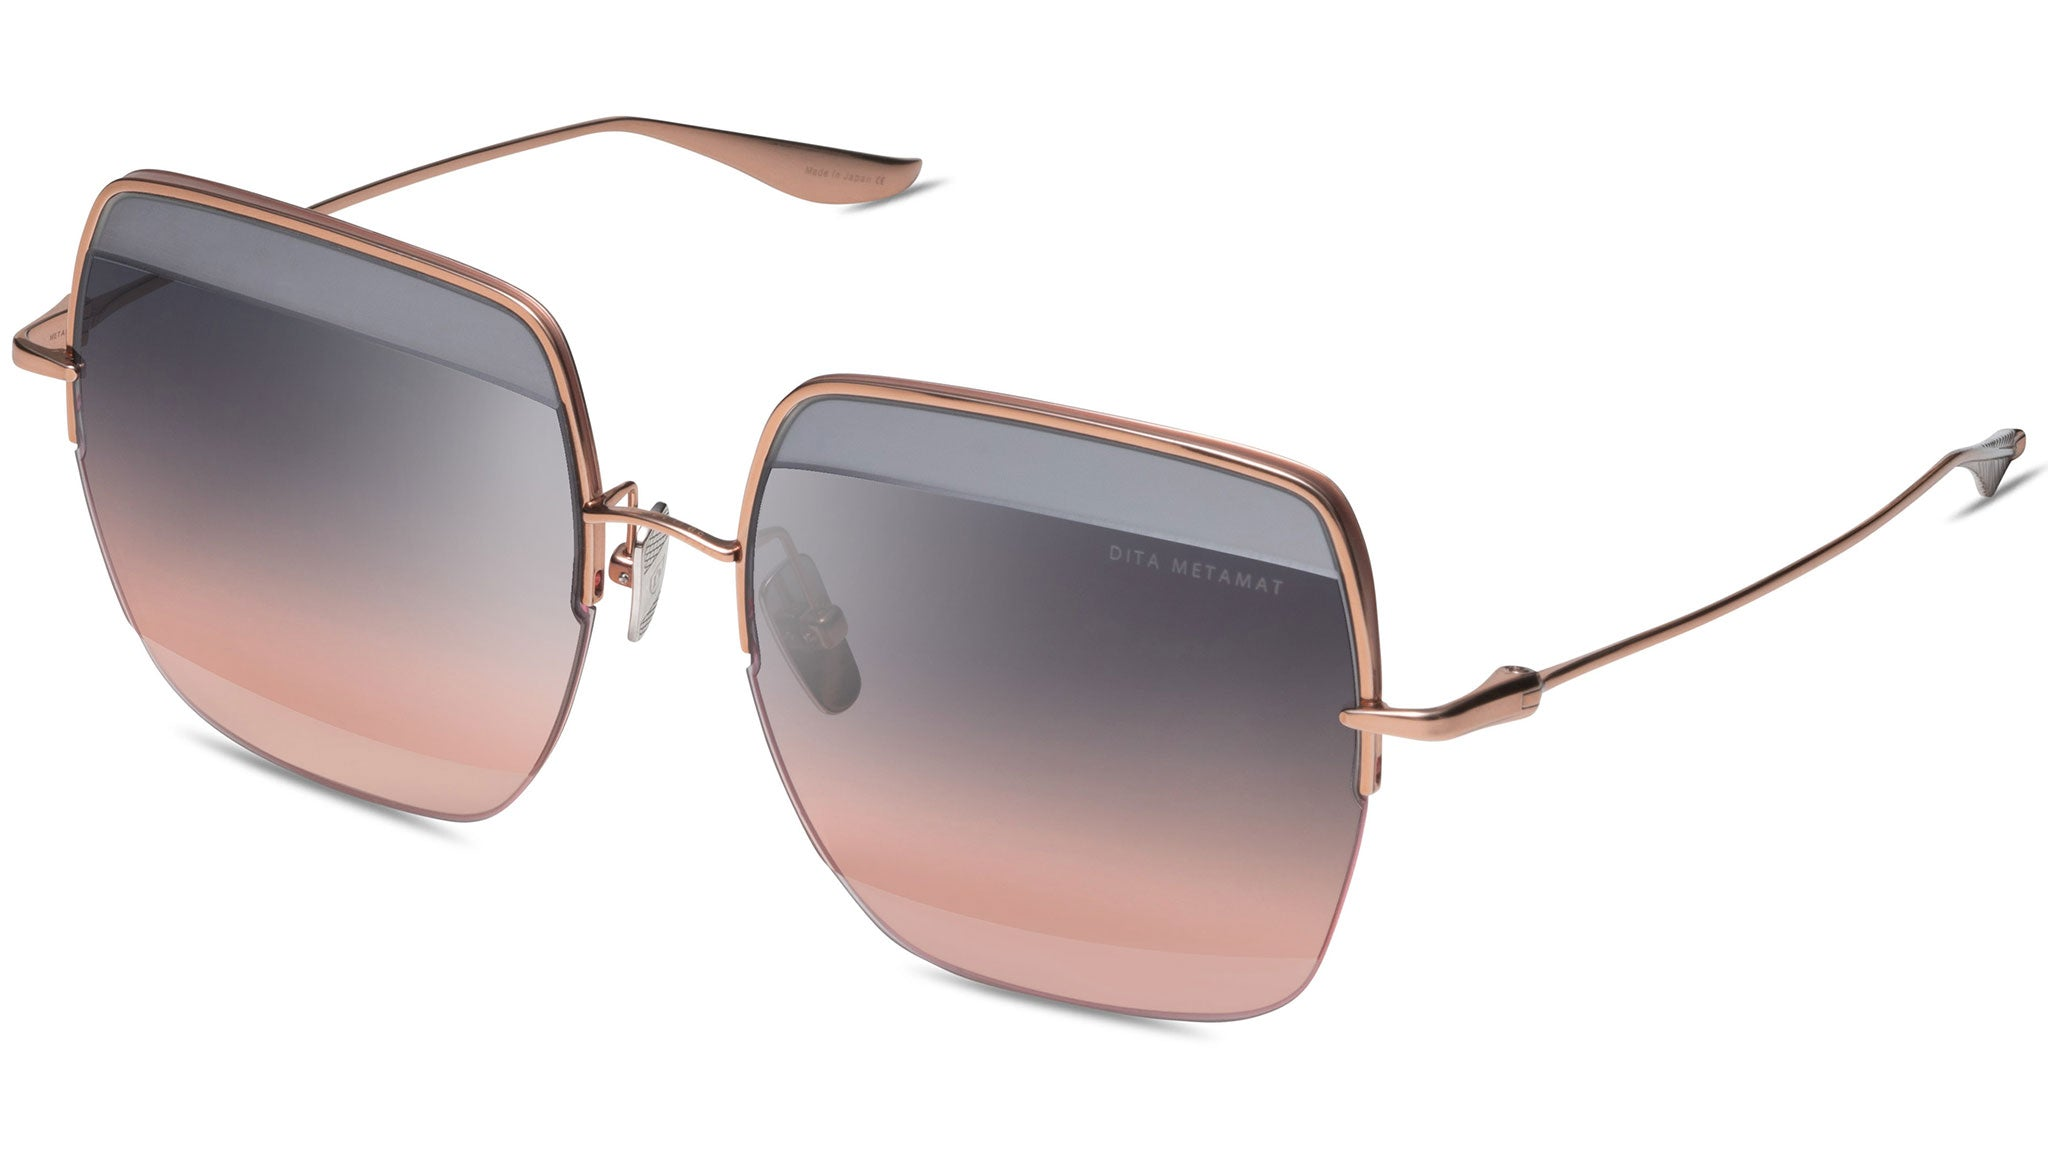 Metamat DTS 526 02 rose gold